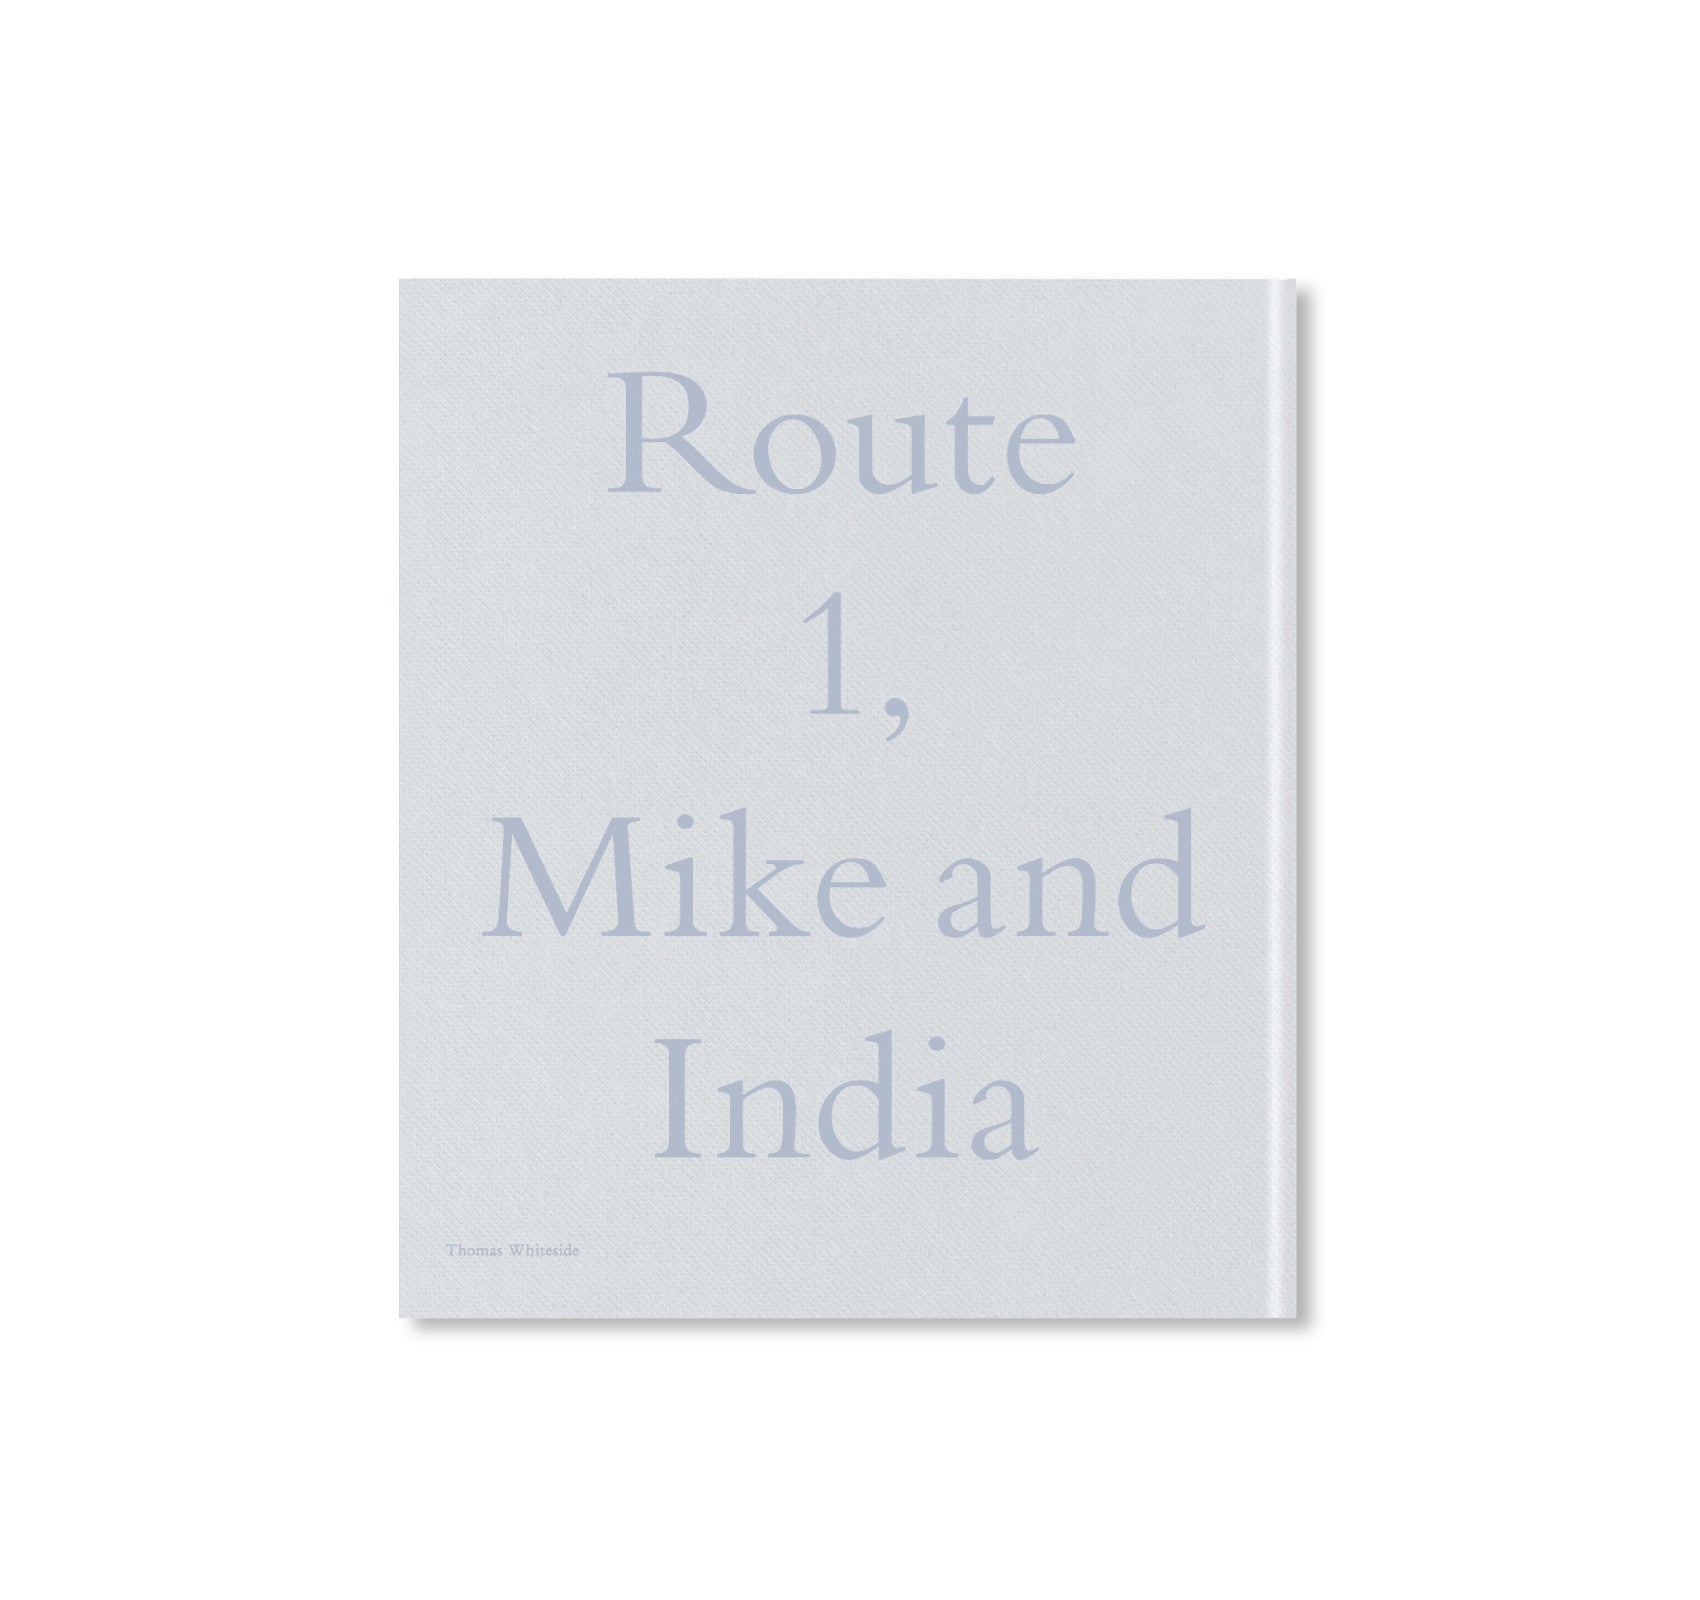 ROUTE 1, MIKE AND INDIA by Thomas Whiteside